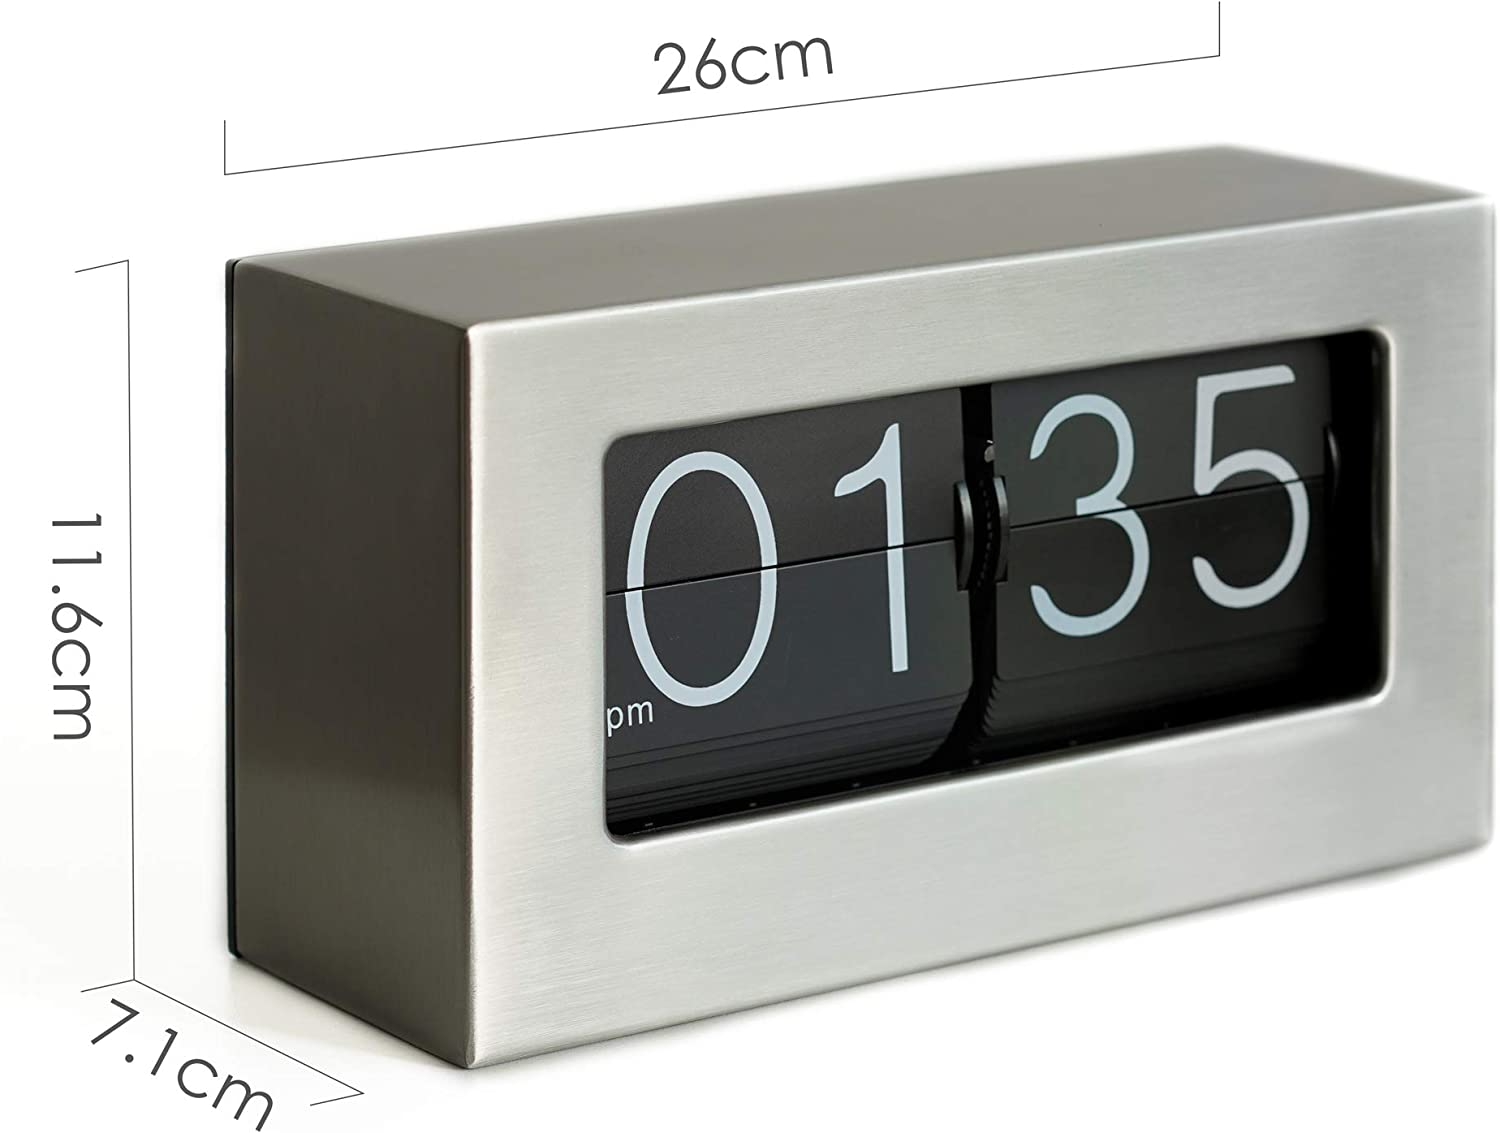 Desktop Tabletop Clock for Shelf Home Stainless Steel Wall Mounted Desk /& Shelf Decorative with Premium Cards Flipping Down Clock for Office 10.5 x 6 x 3.2 inches Rejea WonderZoo Auto Flip Clock